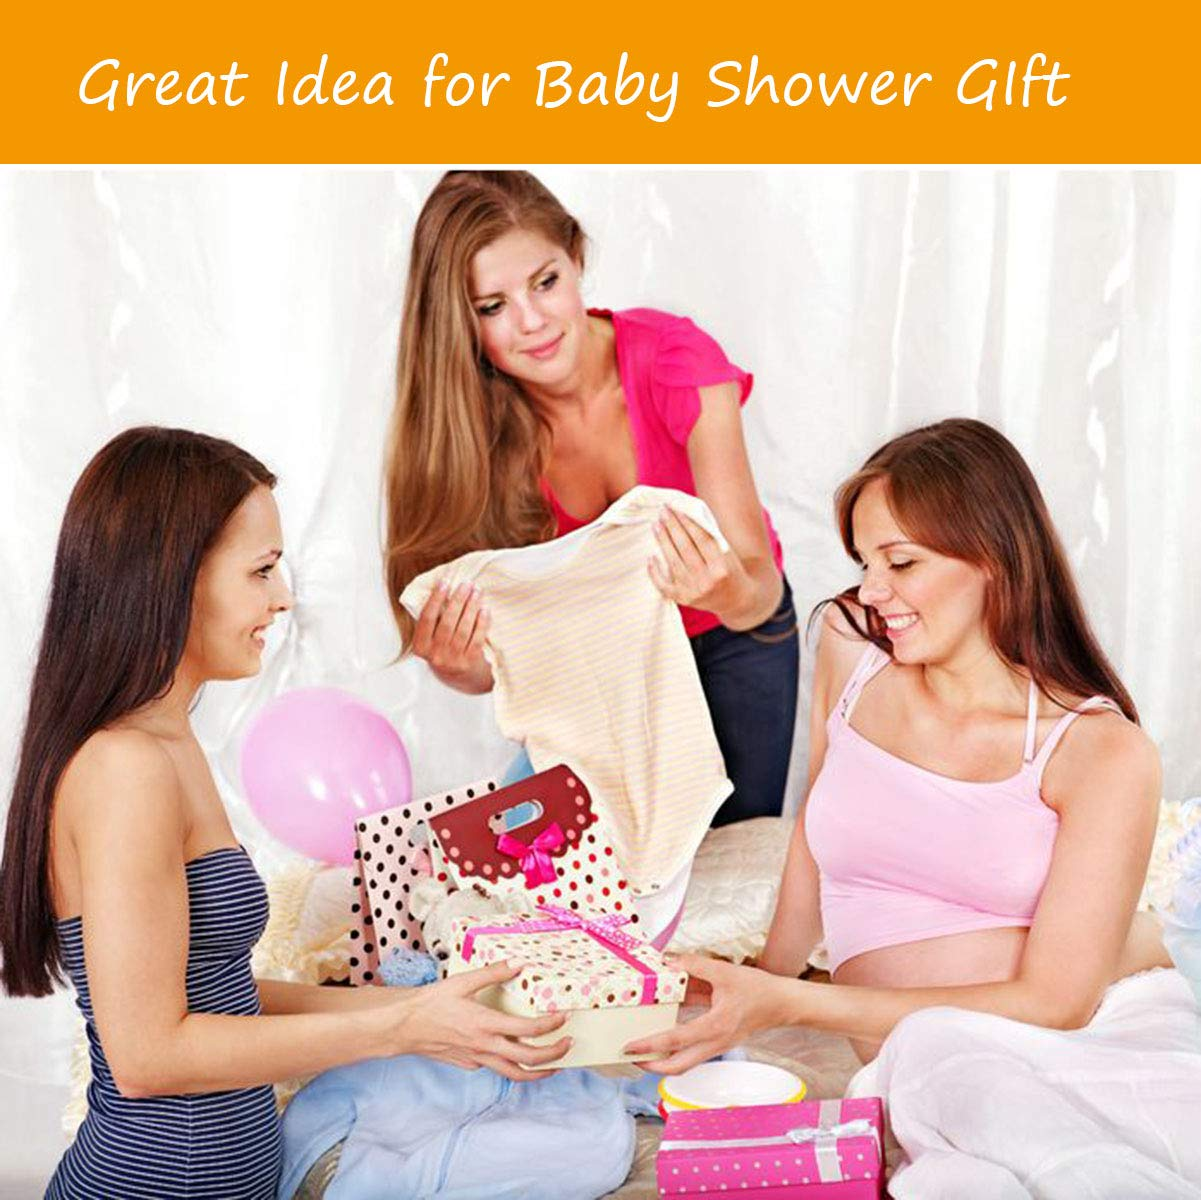 Baby Hammock for Crib Mimics Womb Newborn Bassinet Strong Material Upgraded Safety Measures Infant Nursery Travel Bed Reduce Environmental Risk Associated with Early Infancy Baby Shower Gift by SYITCUN (Image #8)